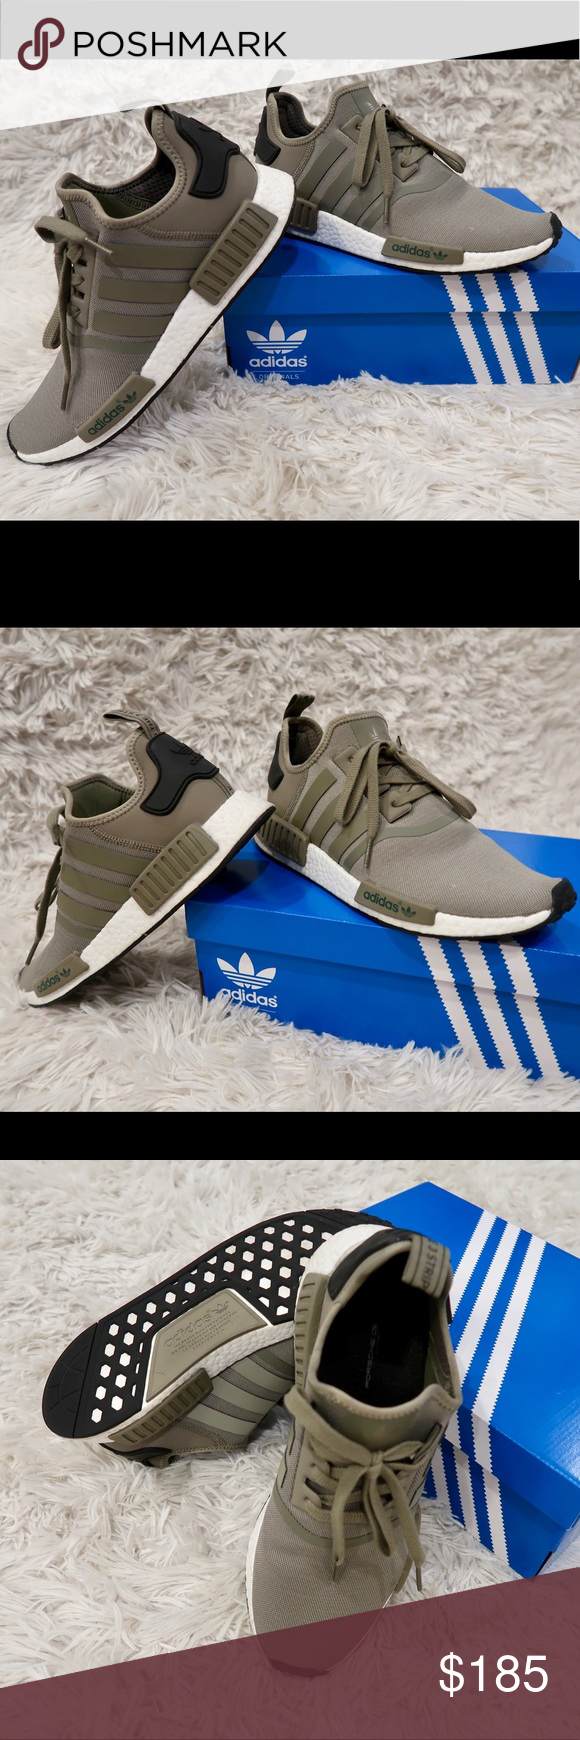 482e6617a ❗️NEW❗️MENS Adidas NMD olive blk size 11 Adidas men NMD r1 trace cargo  olive green   black size 11 ❗️ONLY WORN ONCE ❗️LIKE NEW ‼️Adidas original  ...